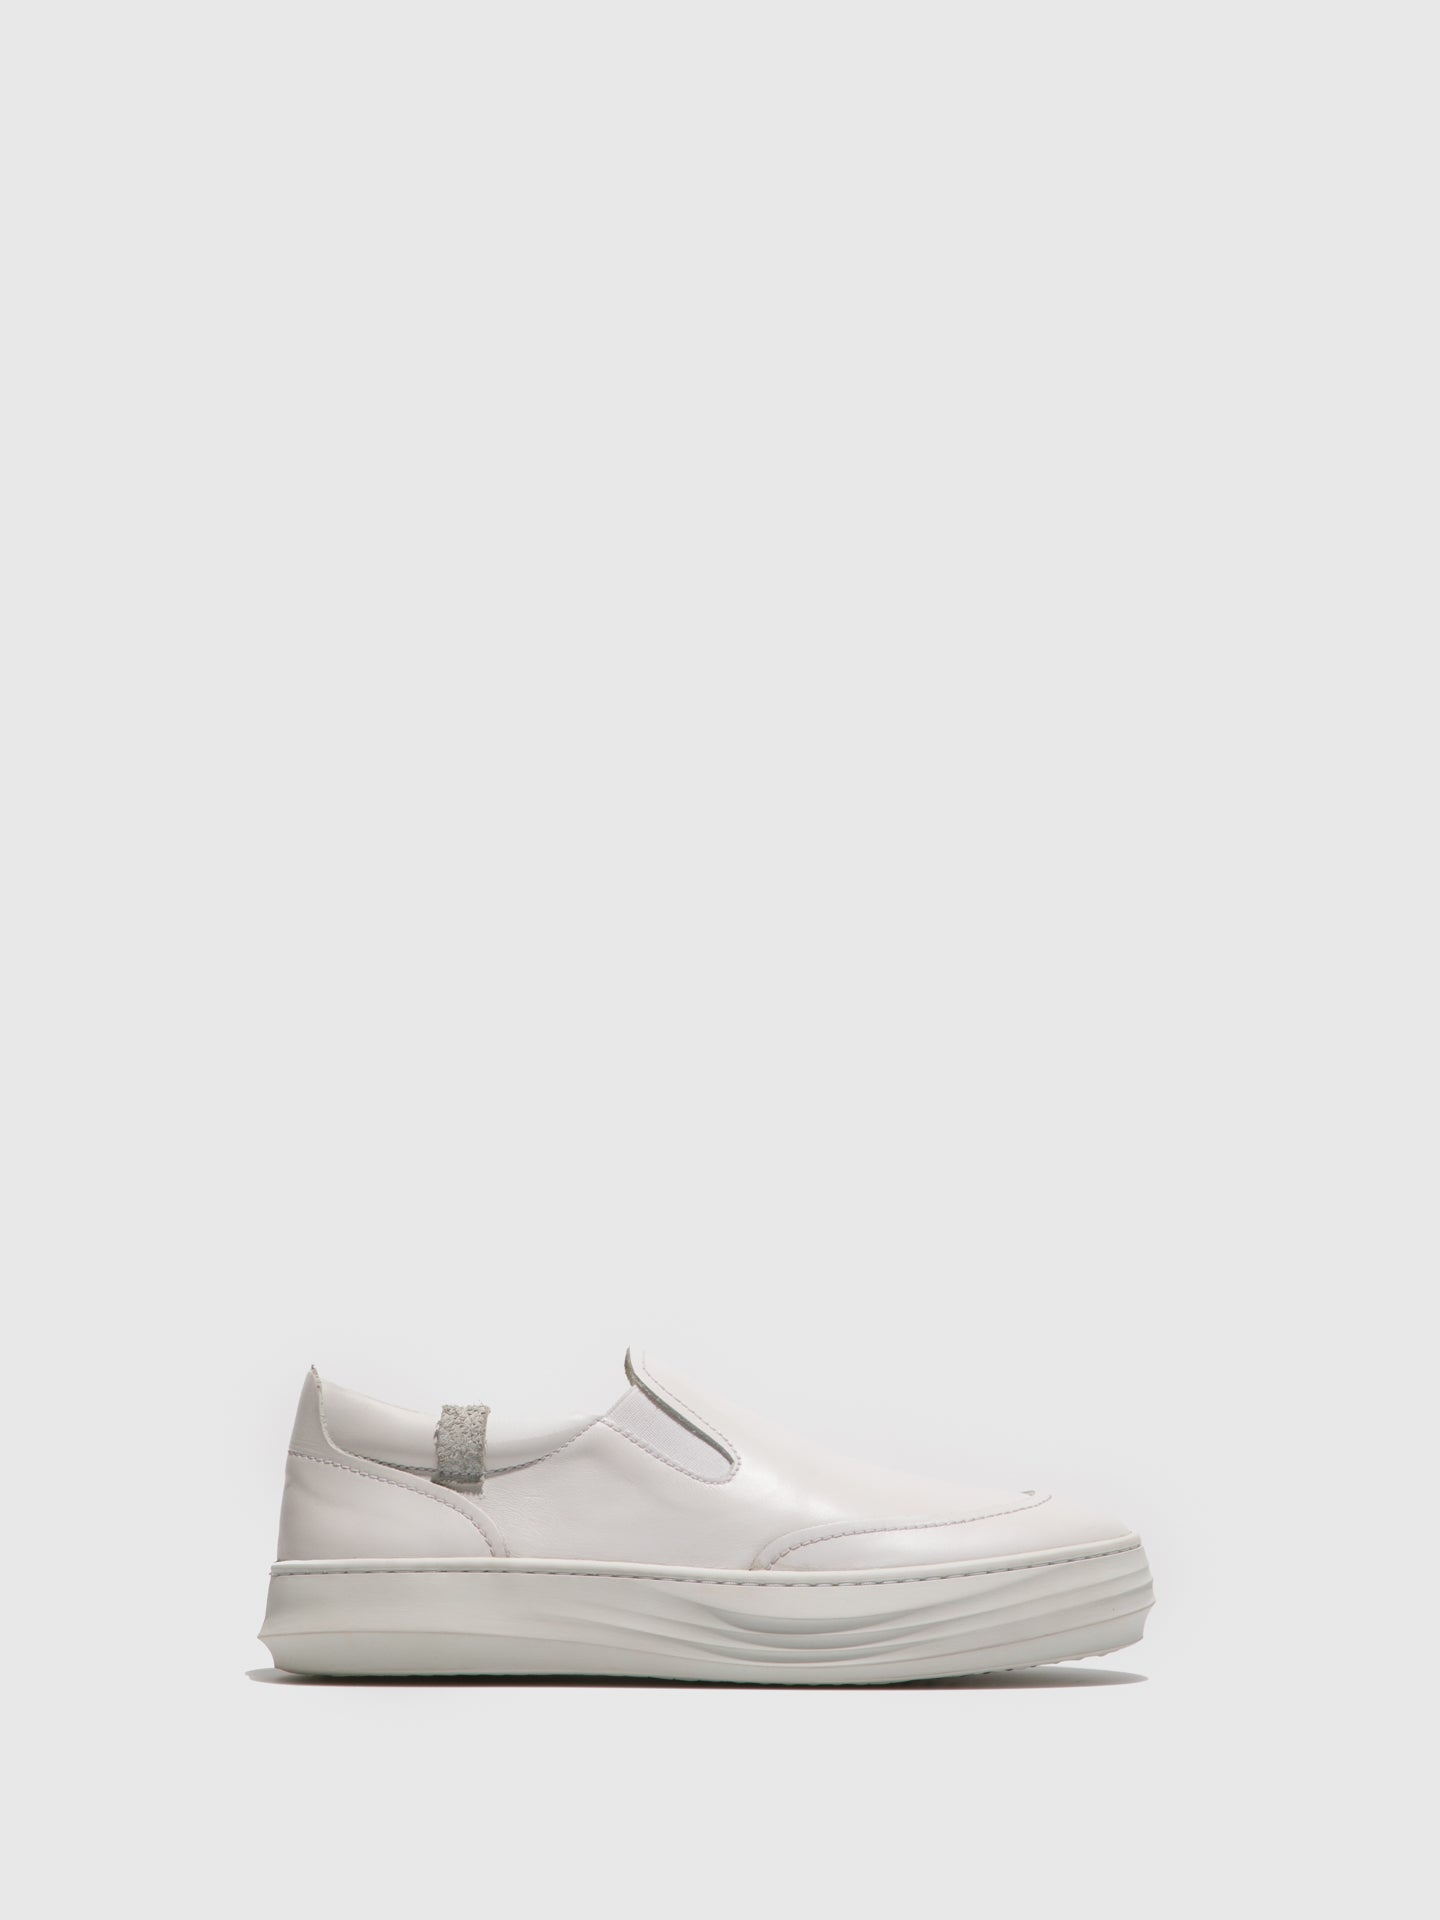 Fly London Ténis Slip-on em Branco